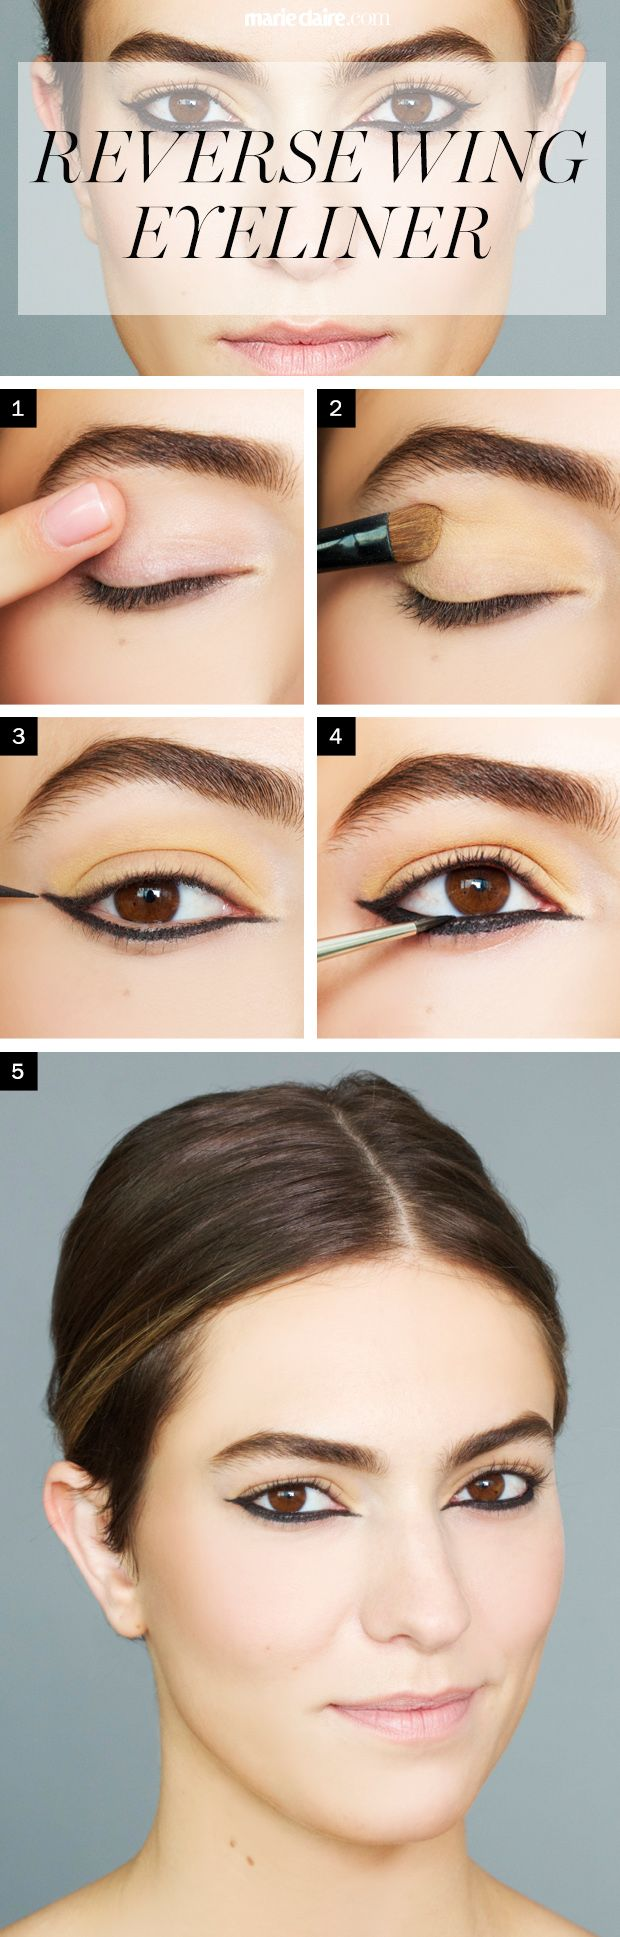 16 Makeup Tricks For Flawless Look Every Woman Should Know (7)